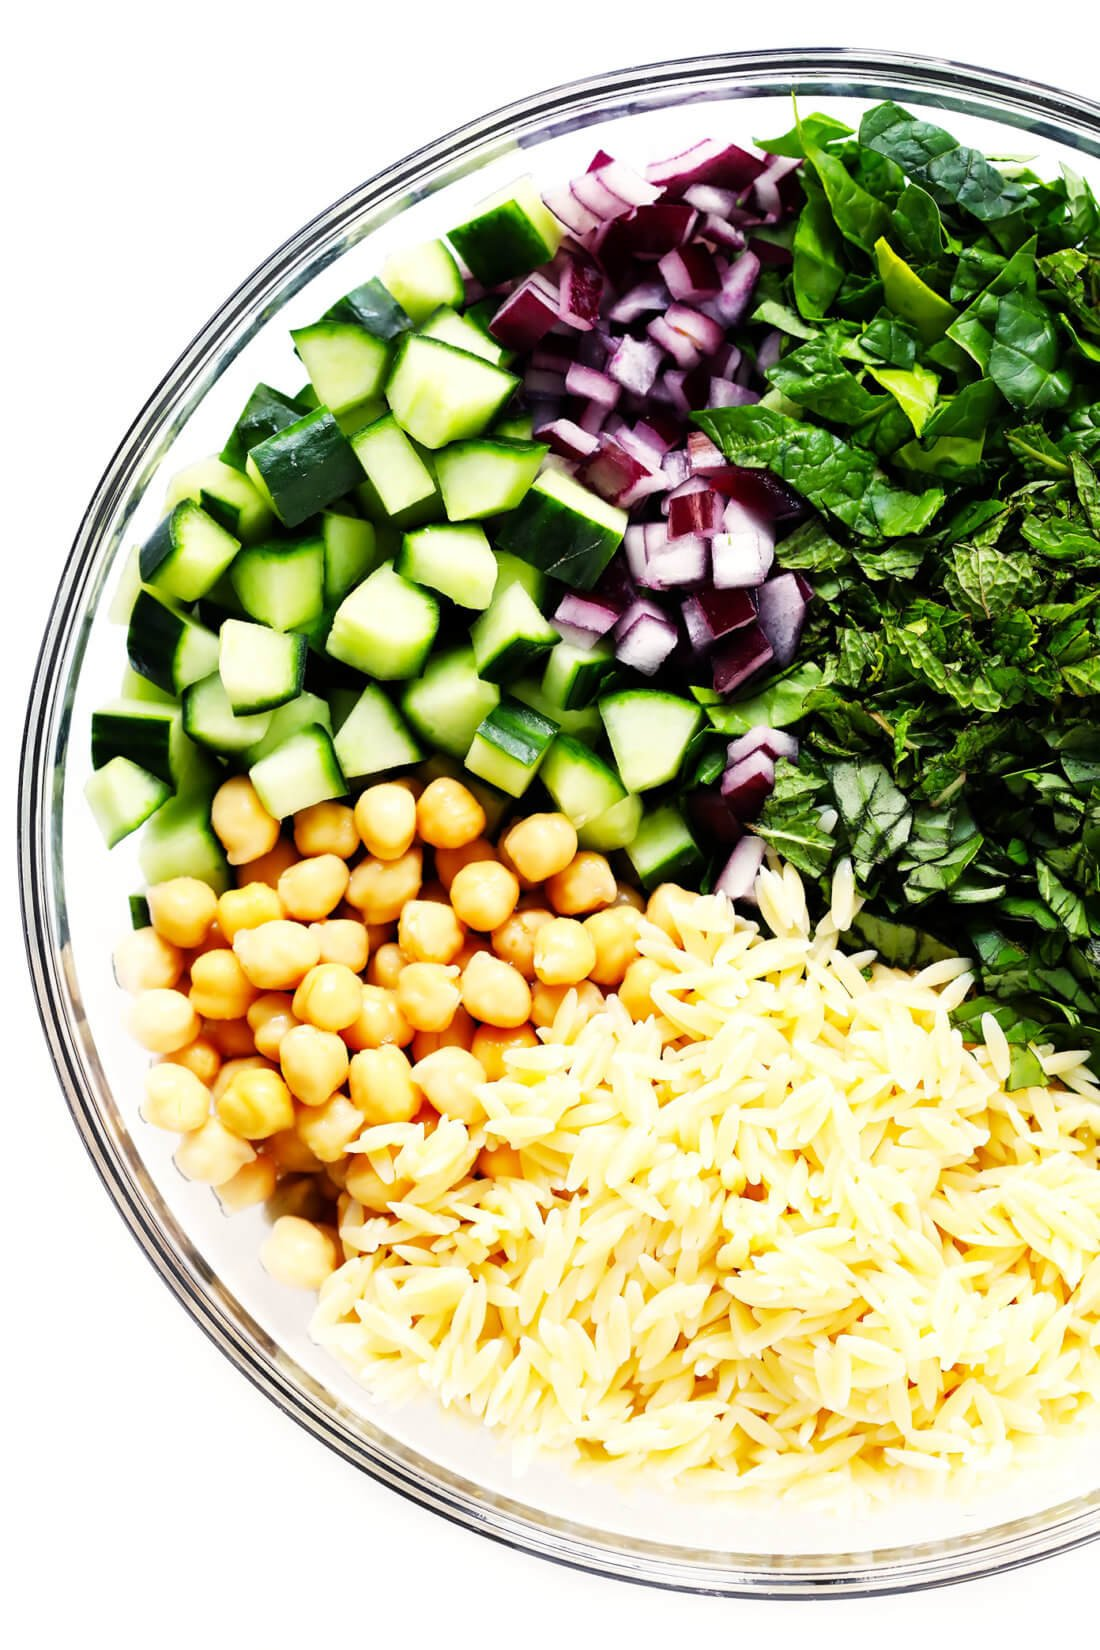 Lemon Orzo Pasta Salad Ingredients